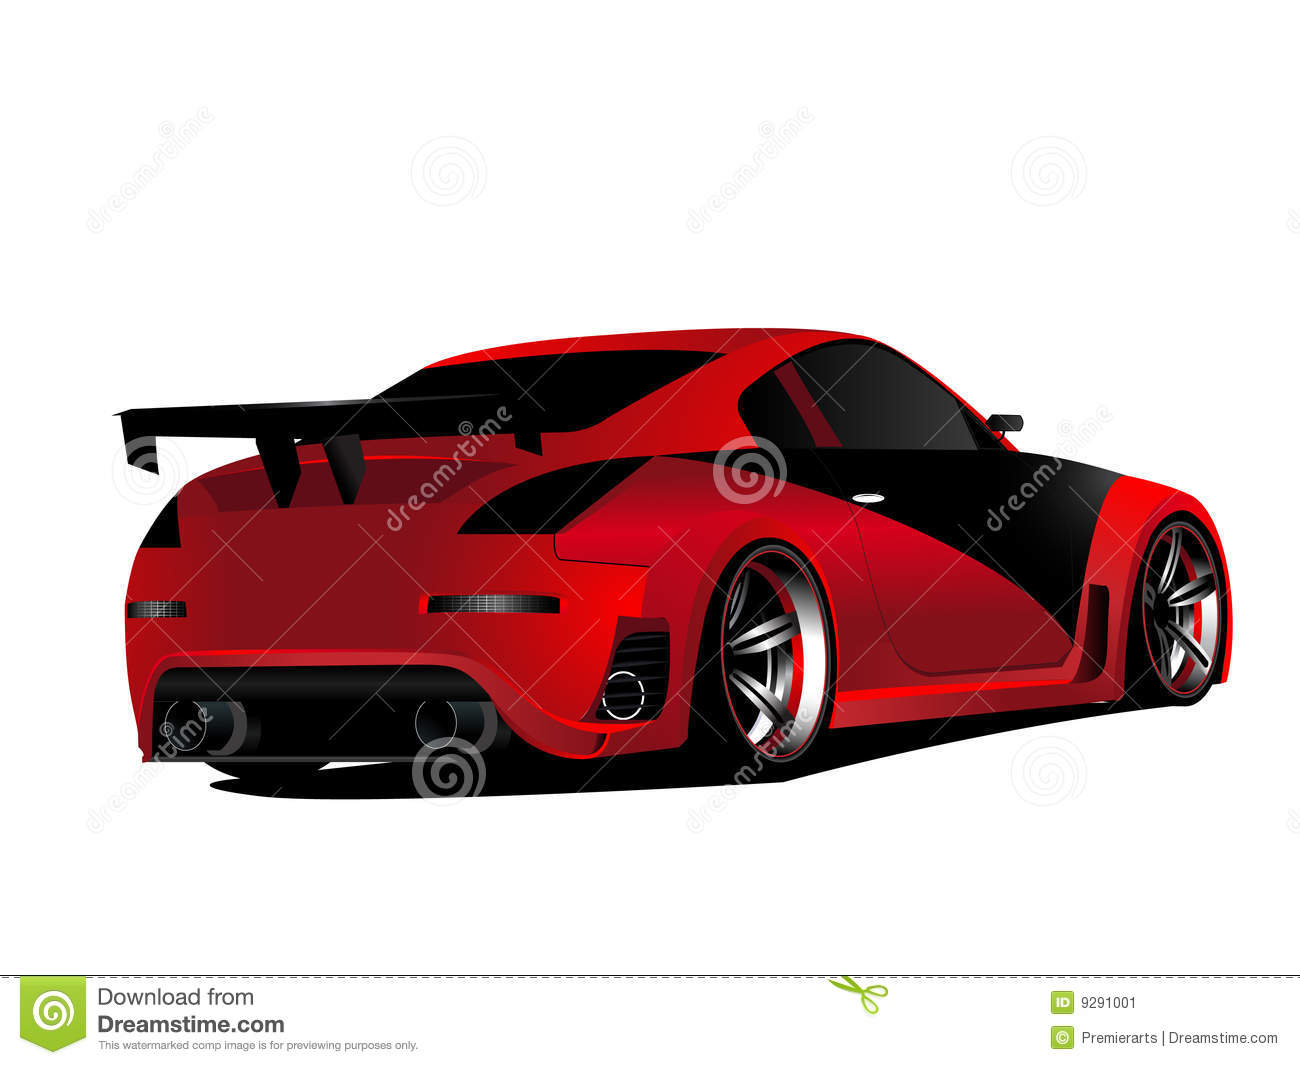 Red nismo 350z submited images